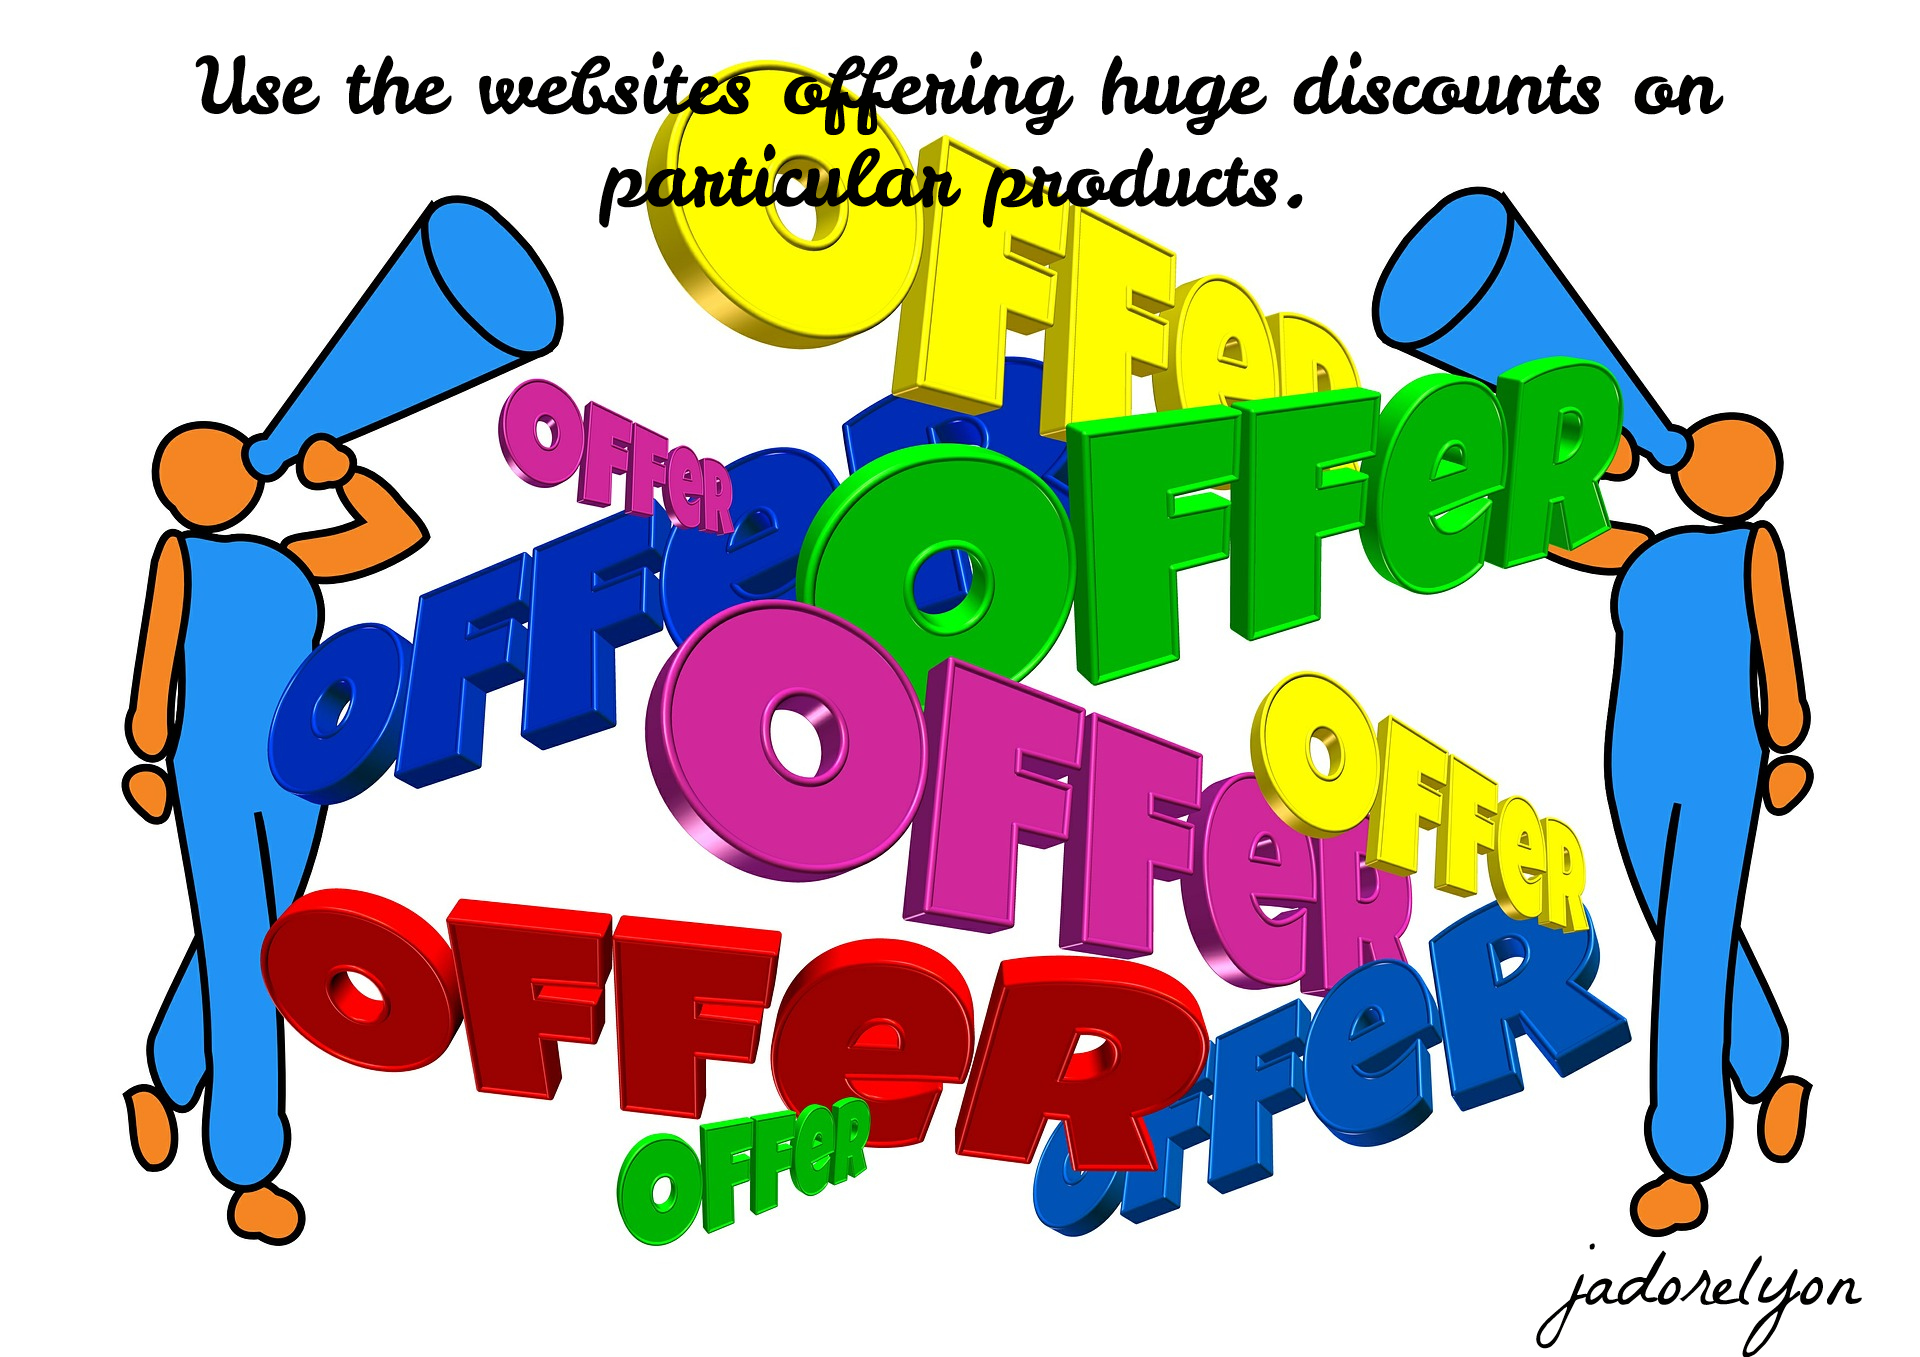 Use the websites offering huge discounts on particular products.